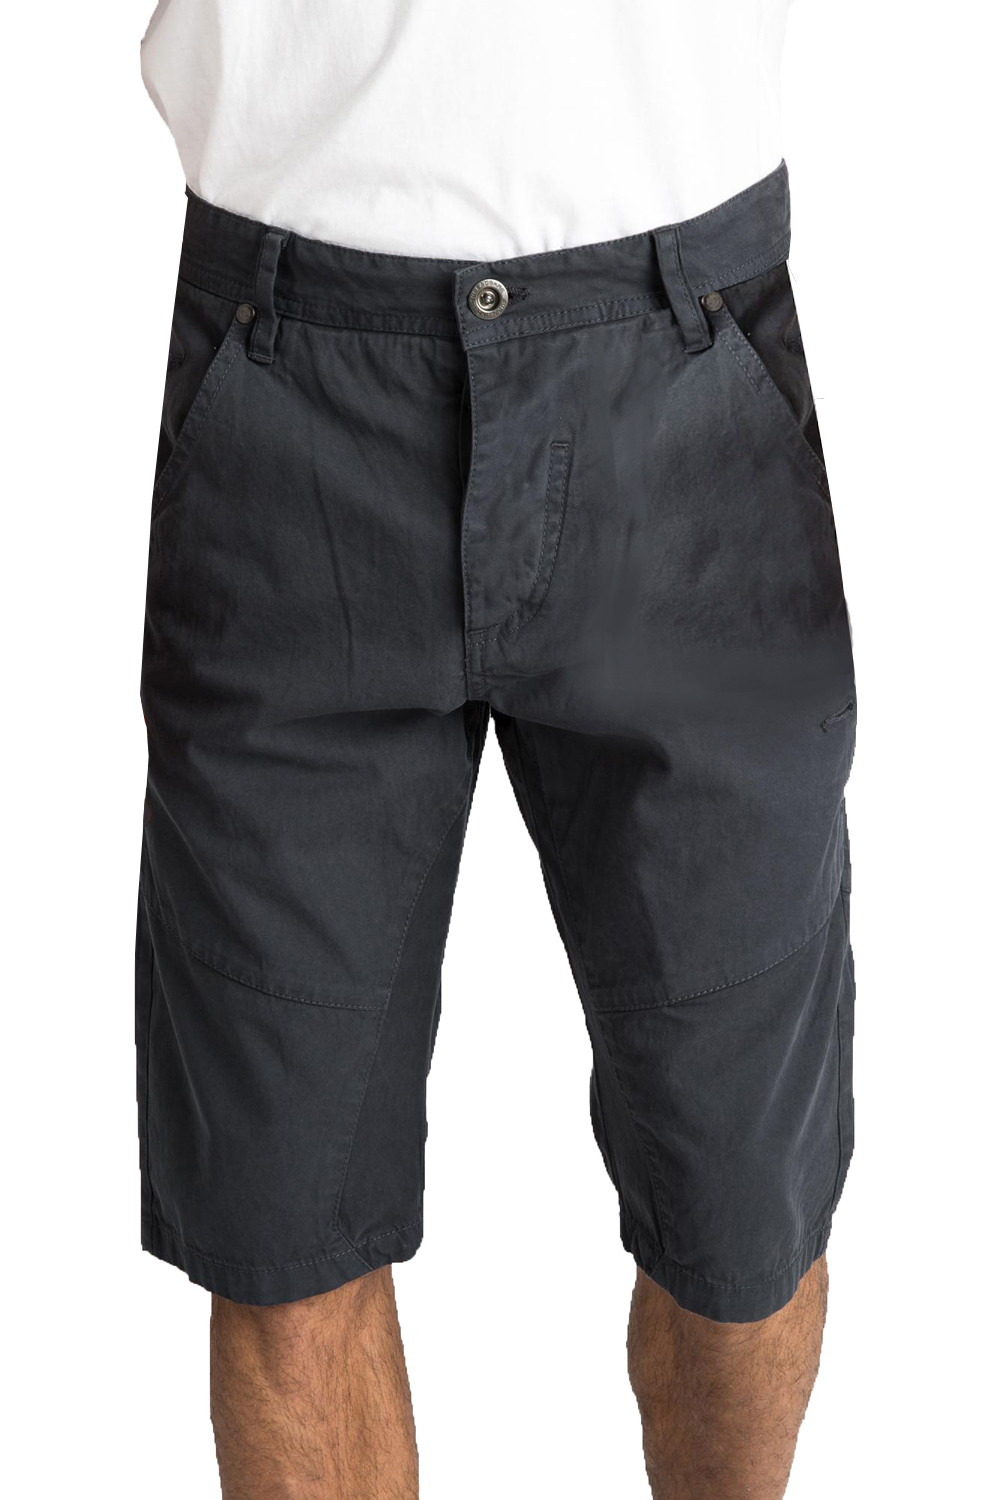 Find great deals on eBay for casual shorts men. Shop with confidence.